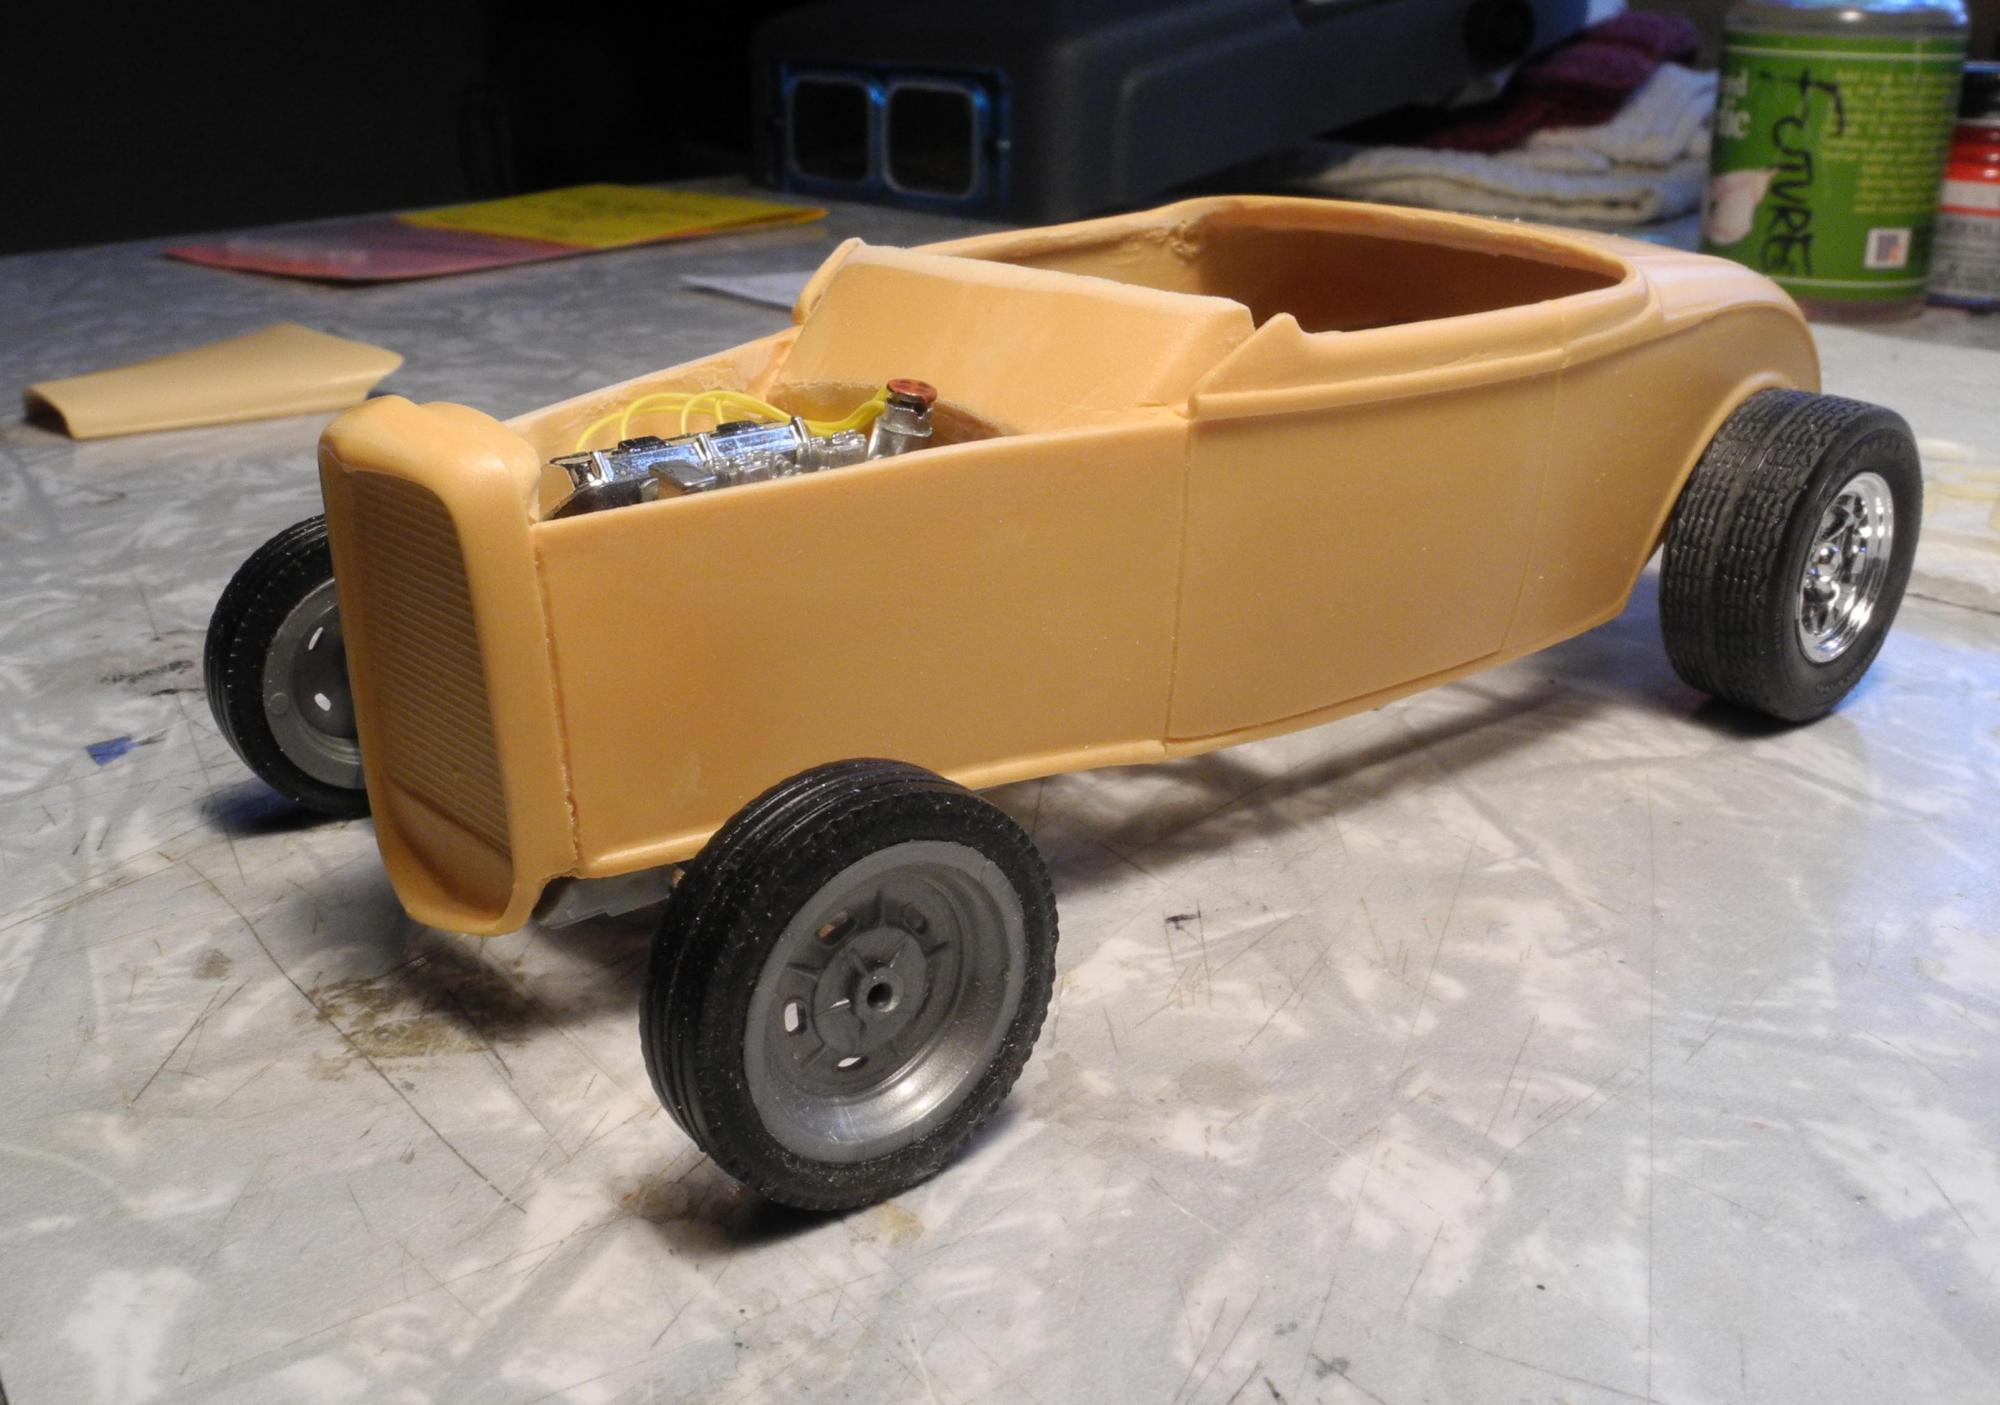 32 Zipper Roadster, updated photos 8/26 - On The Workbench - Model ...